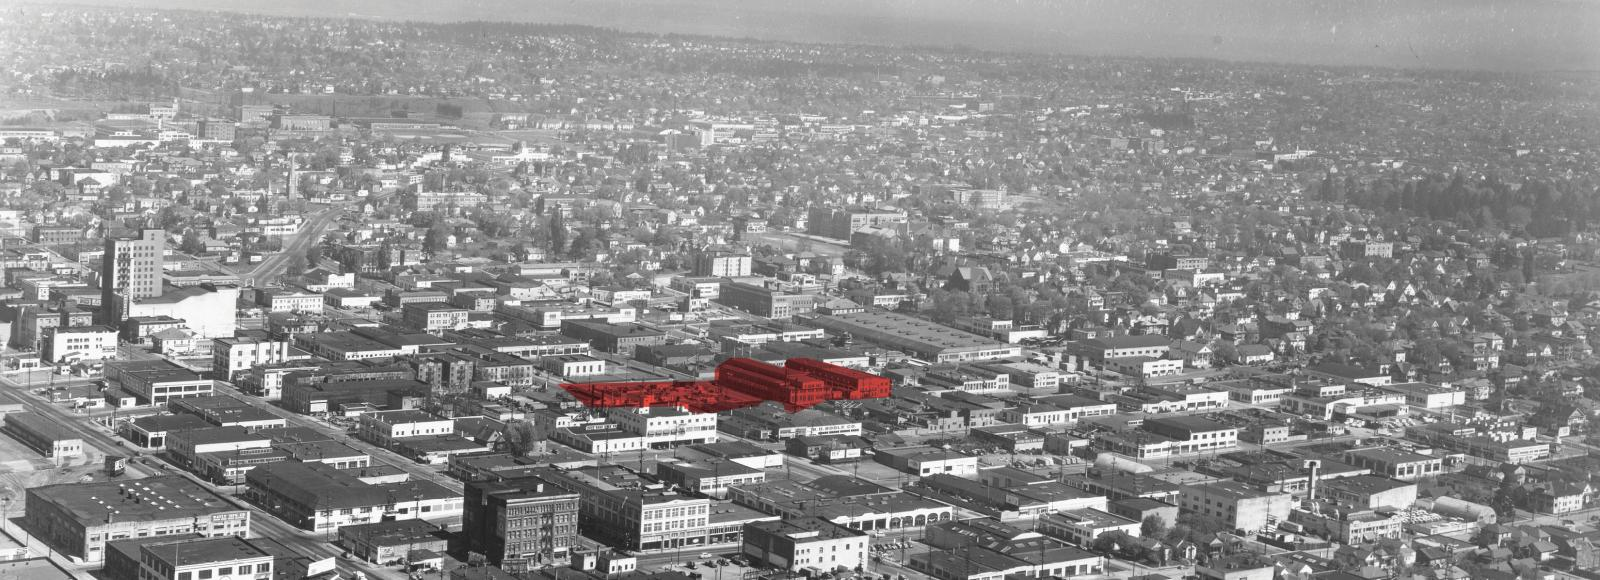 Aerial view of the central east side in black and white with the Redd campus highlighted in red.